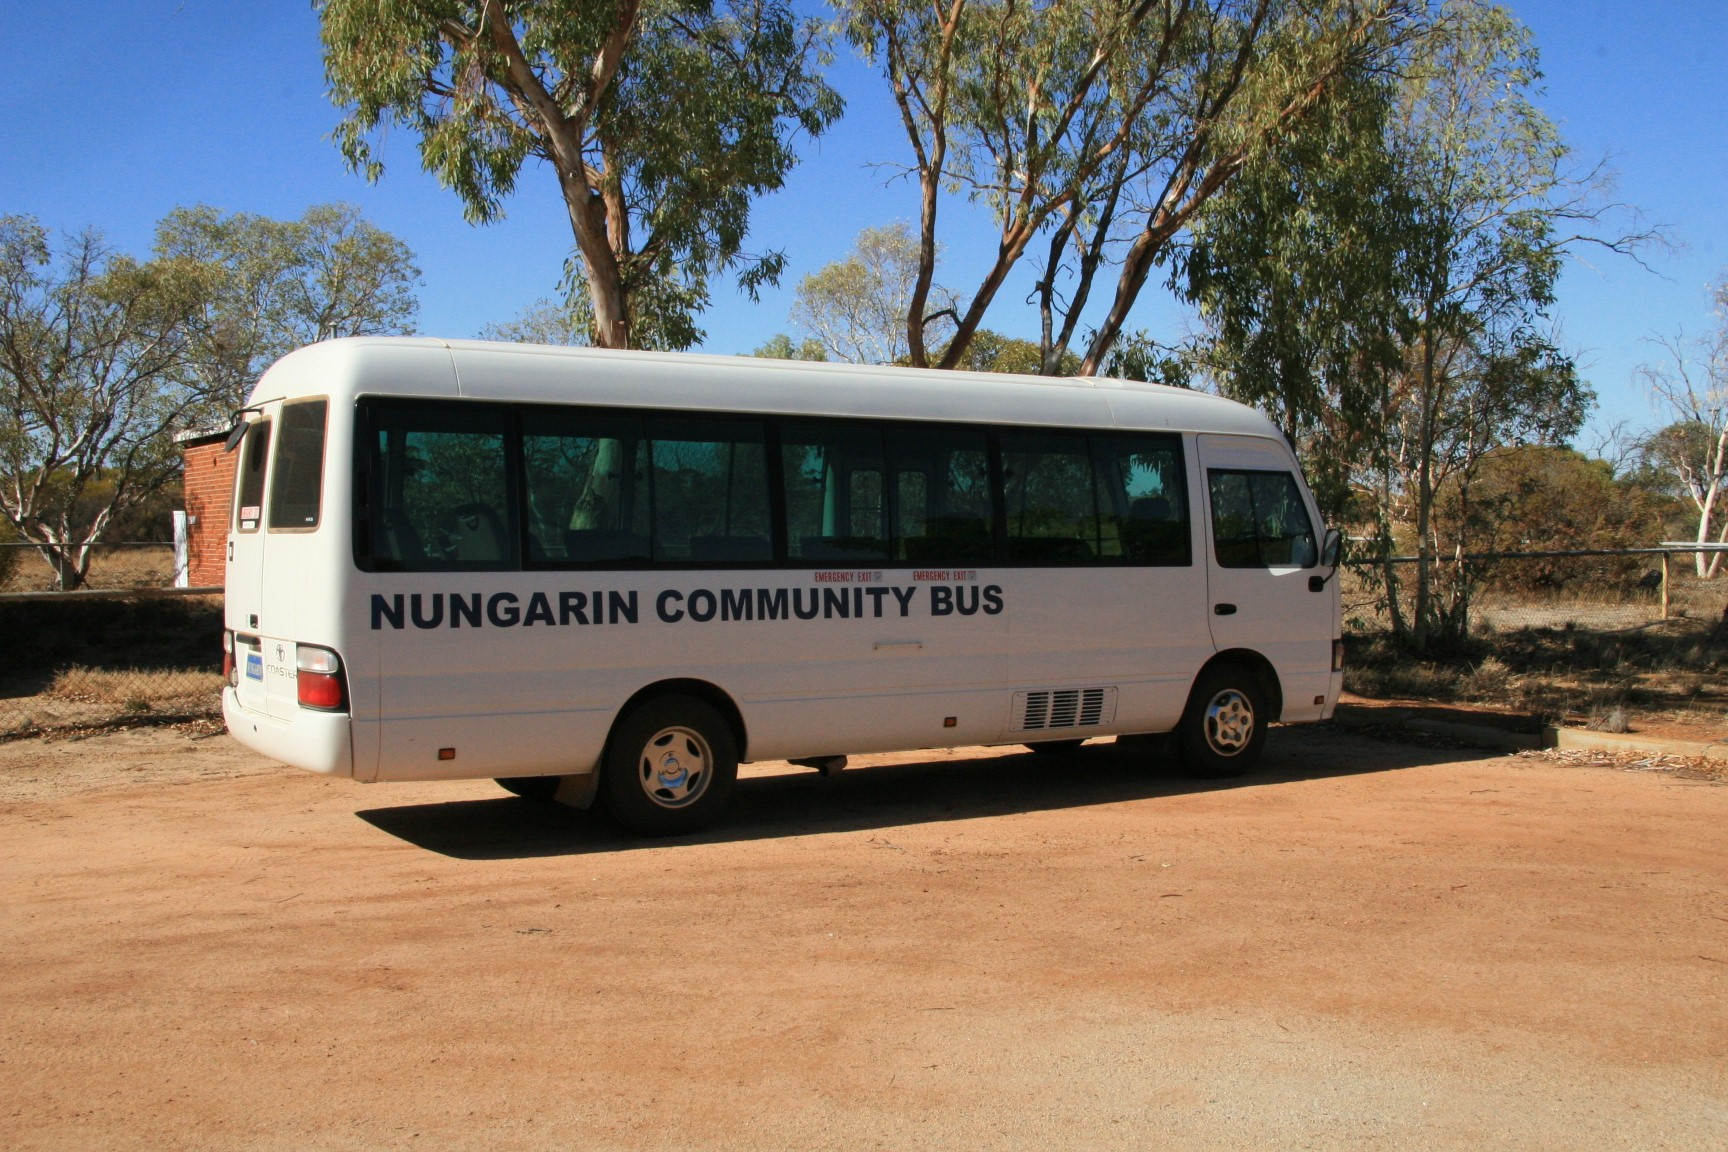 Nungarin Community Bus